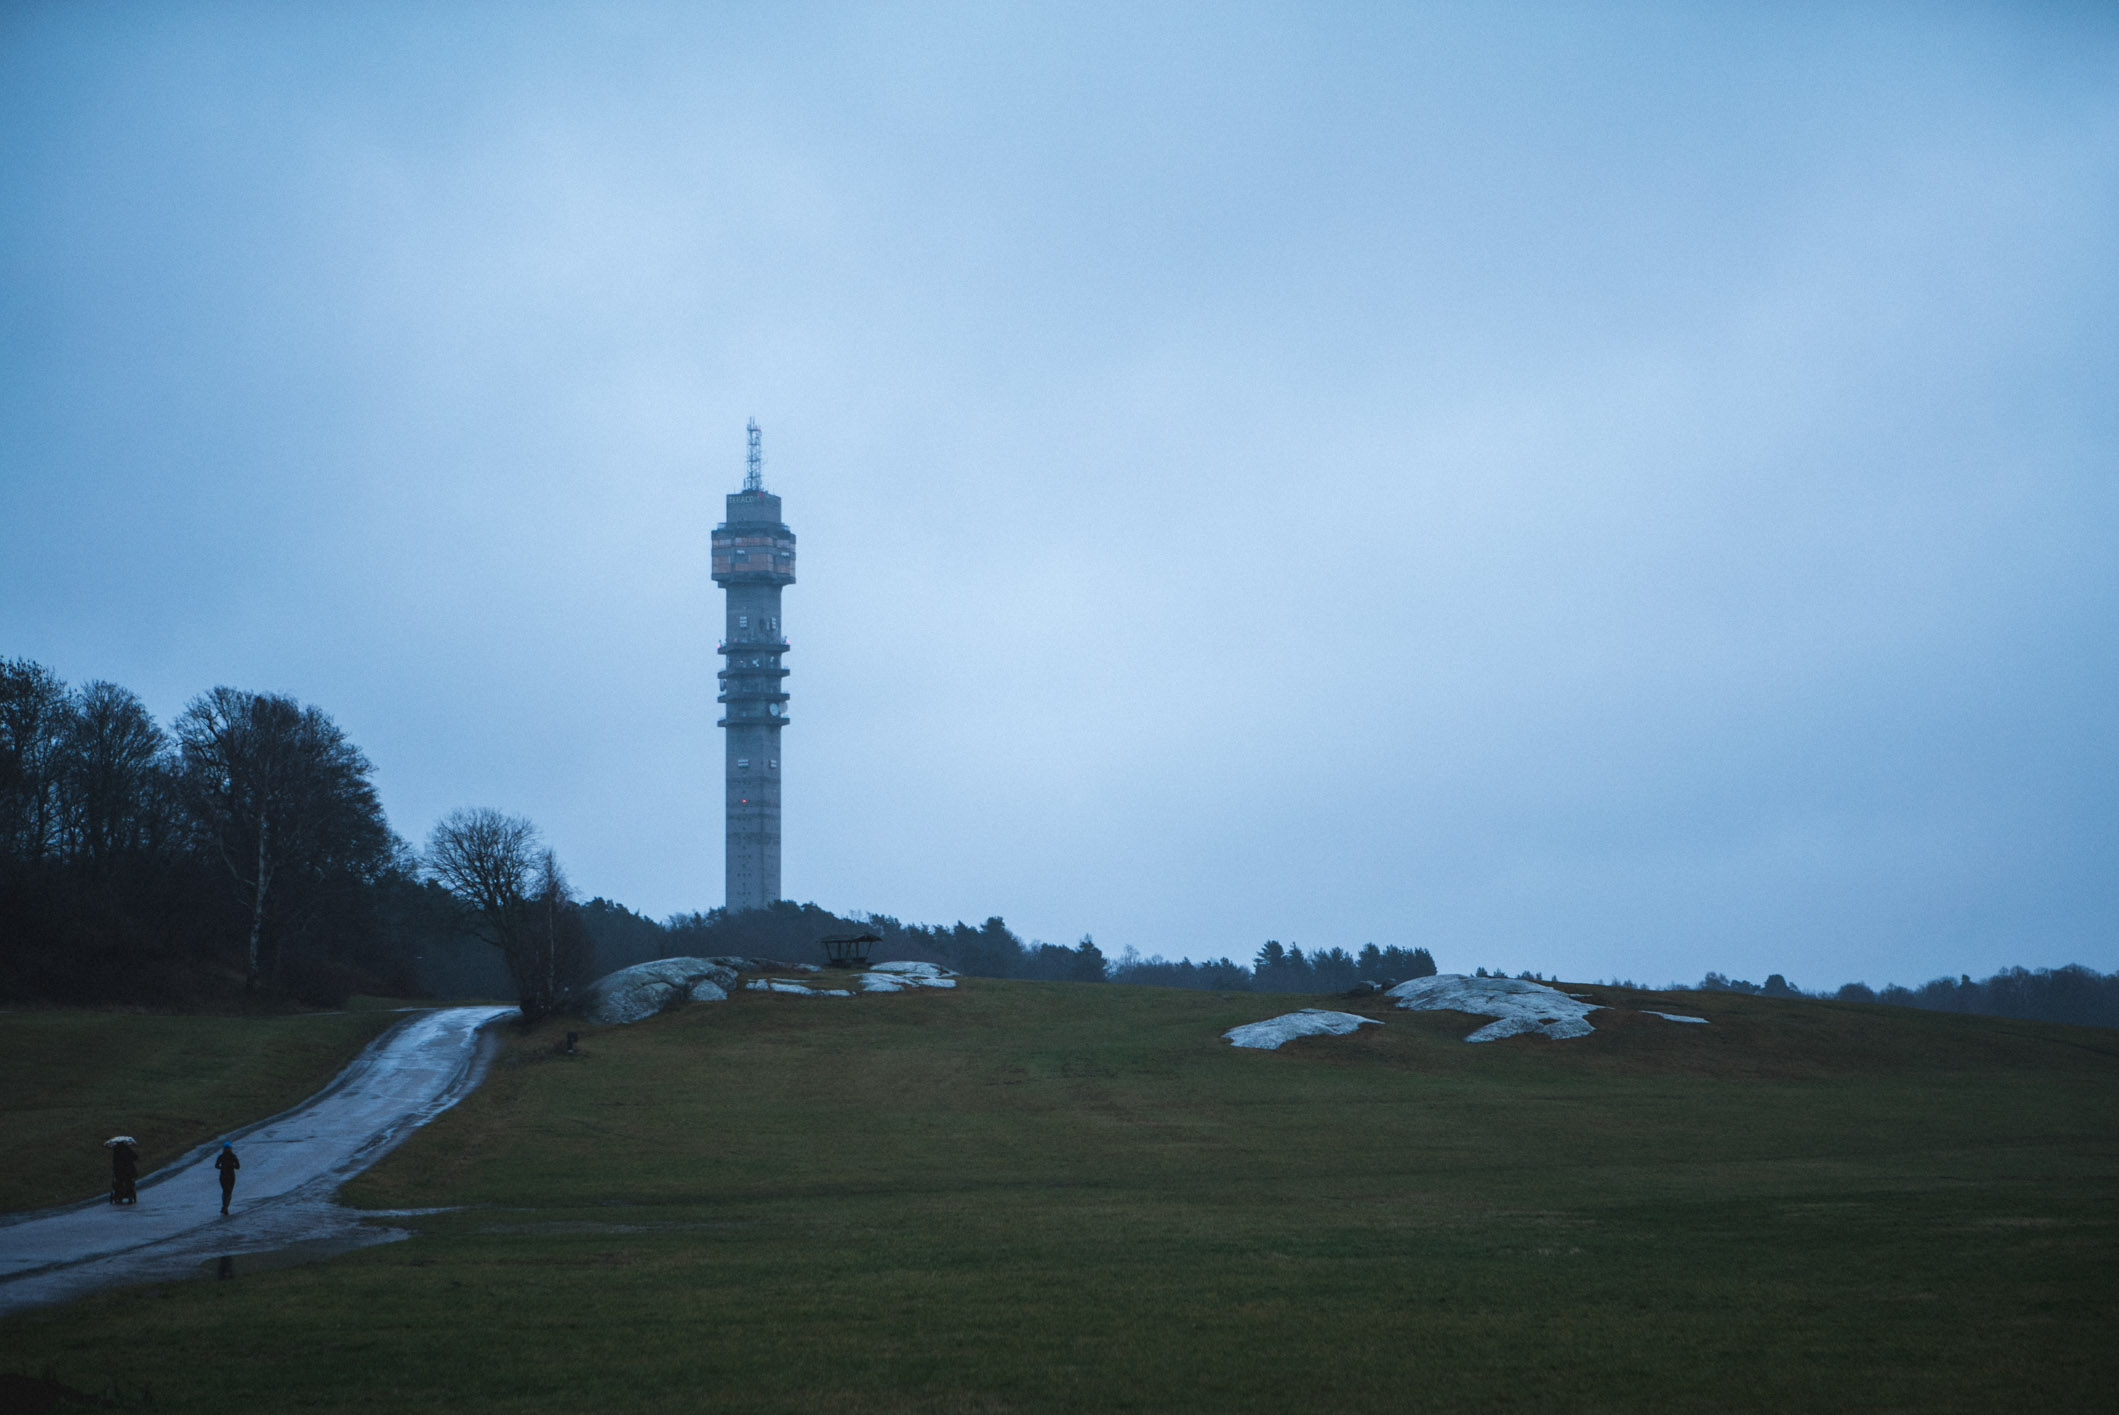 Kaknästornet, a TV tower on the outskirts of Stockholm